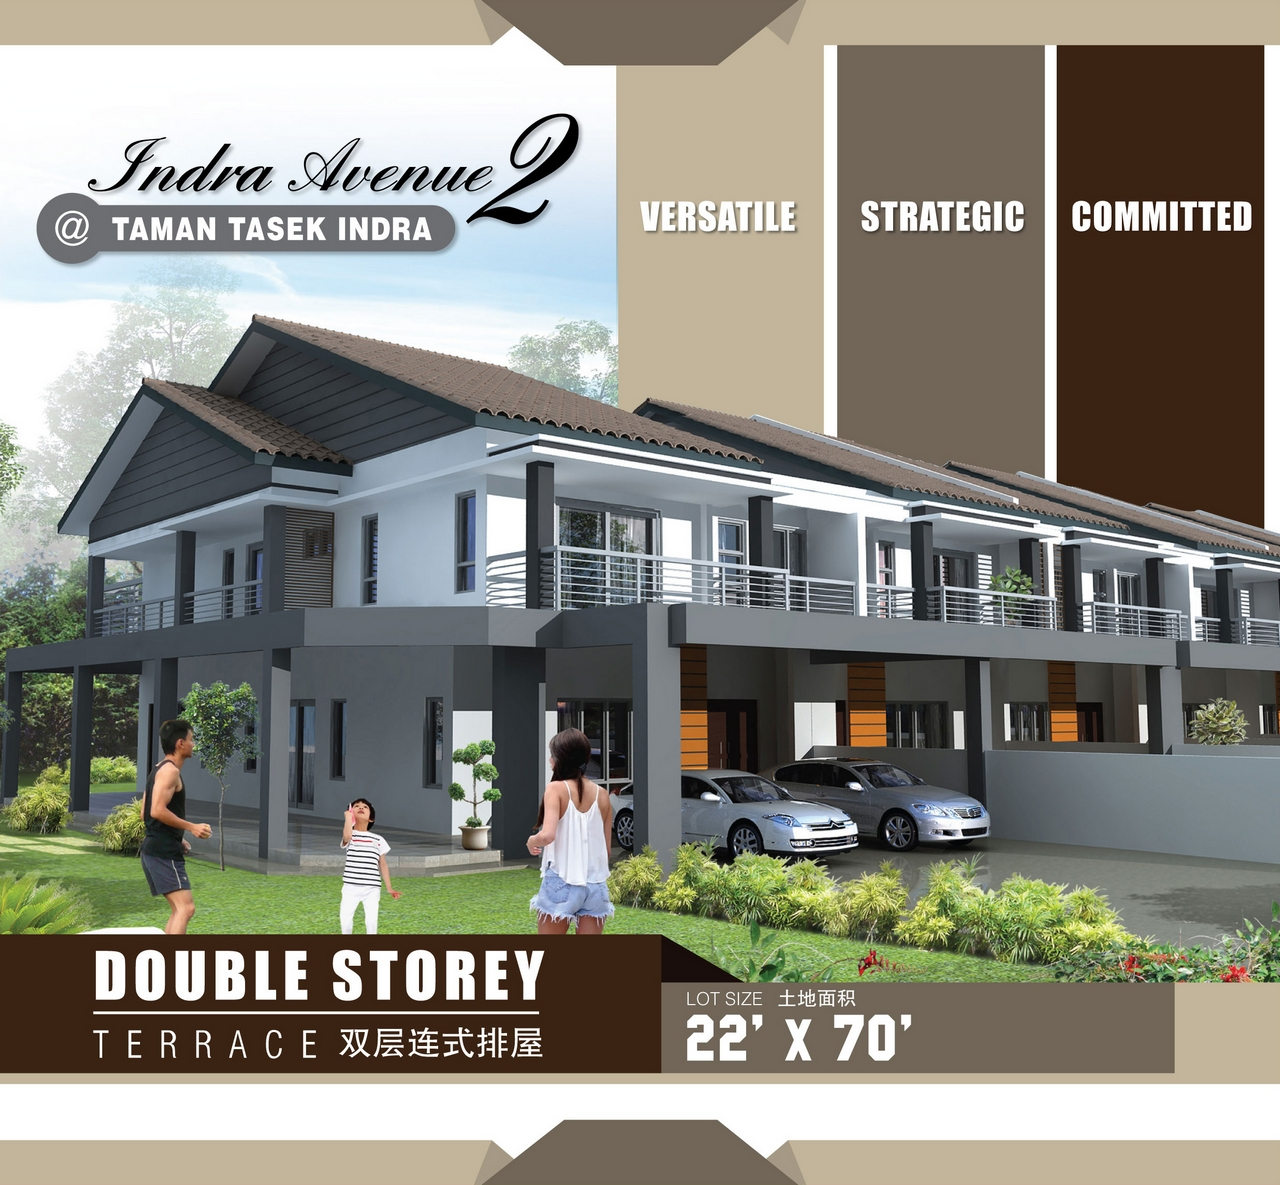 indra avenue 2 1 visual